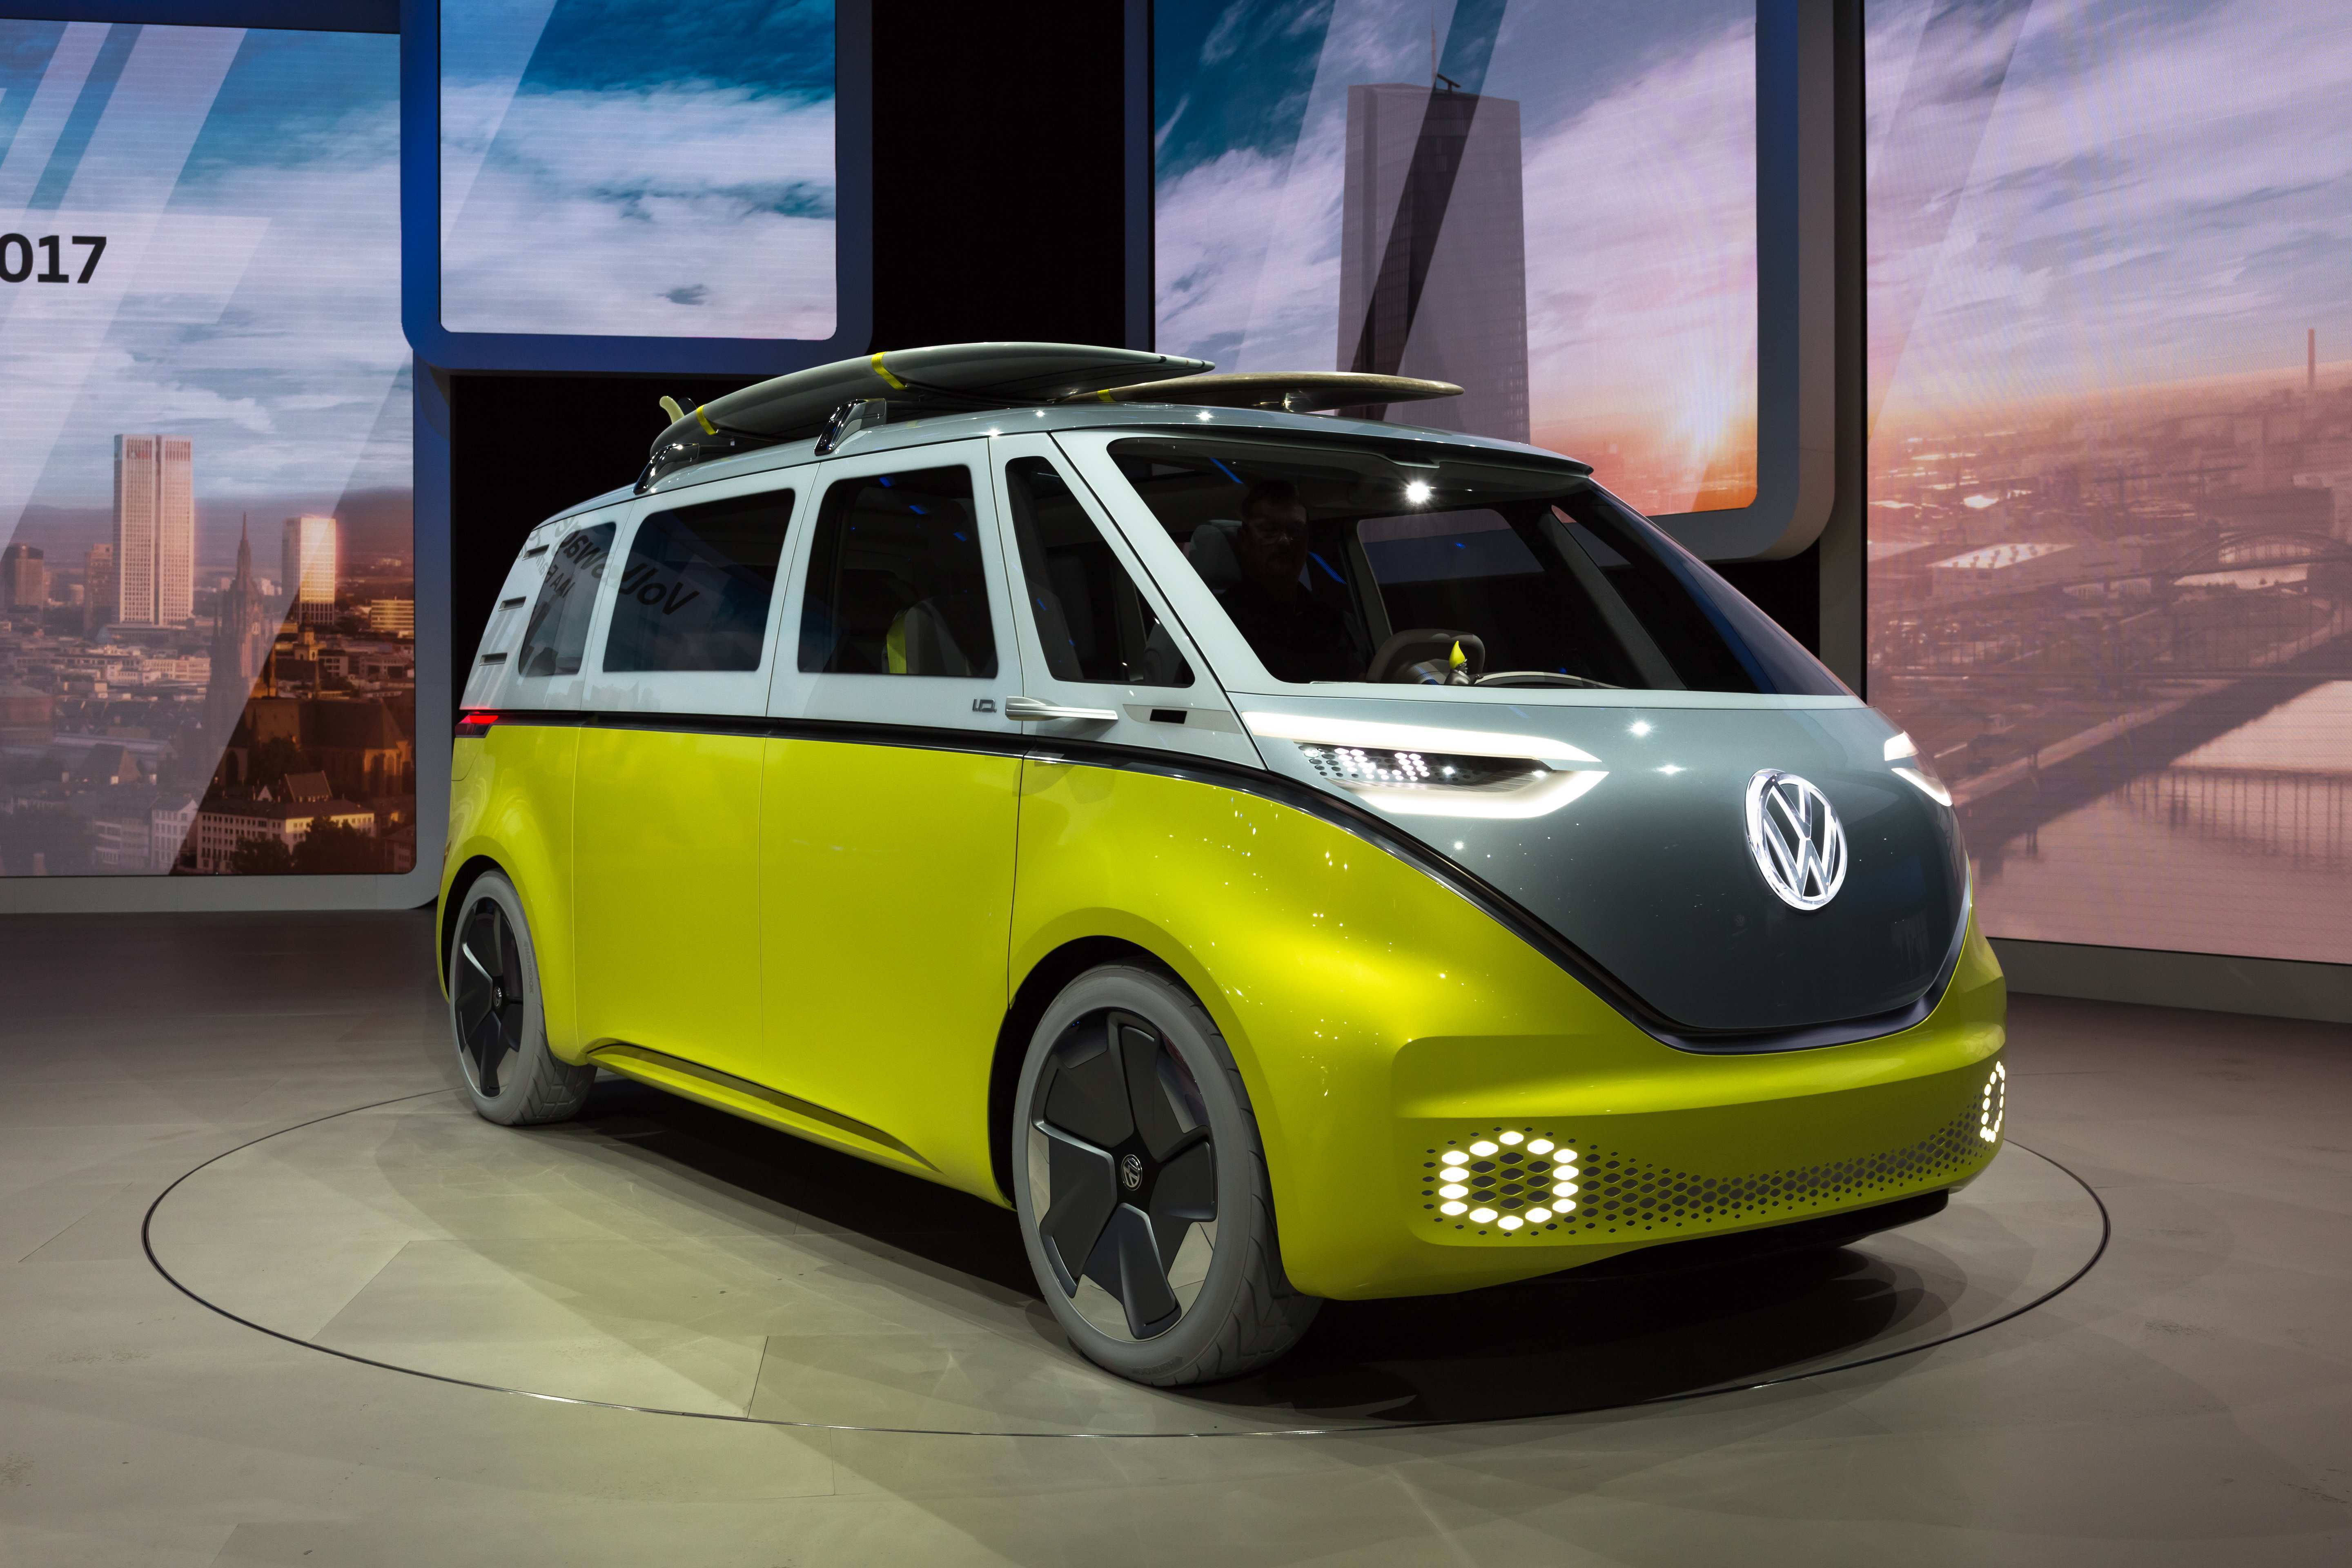 67 All New Volkswagen Busje 2020 Redesign And Concept